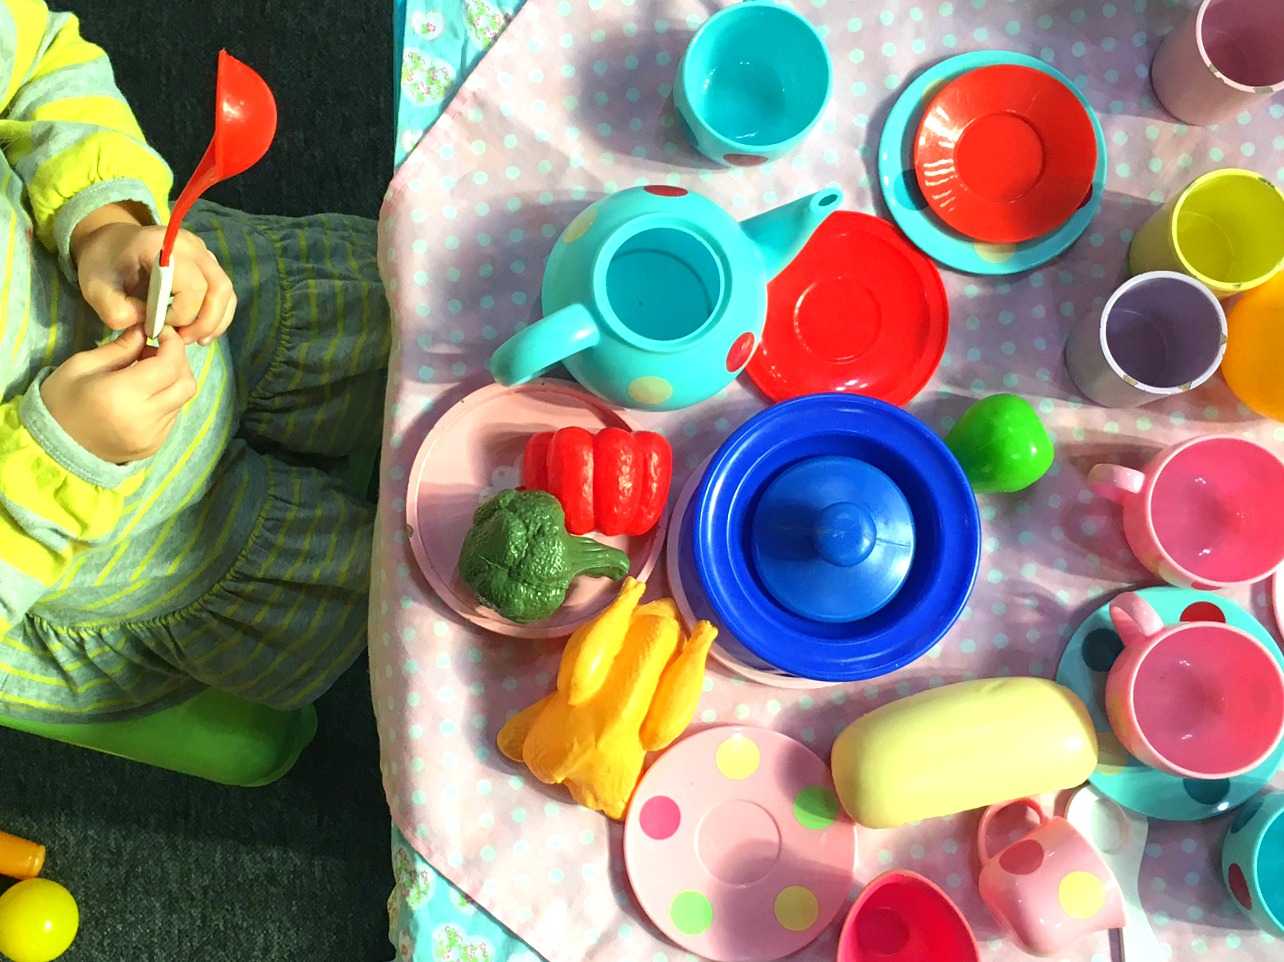 How to find local playgroups to you